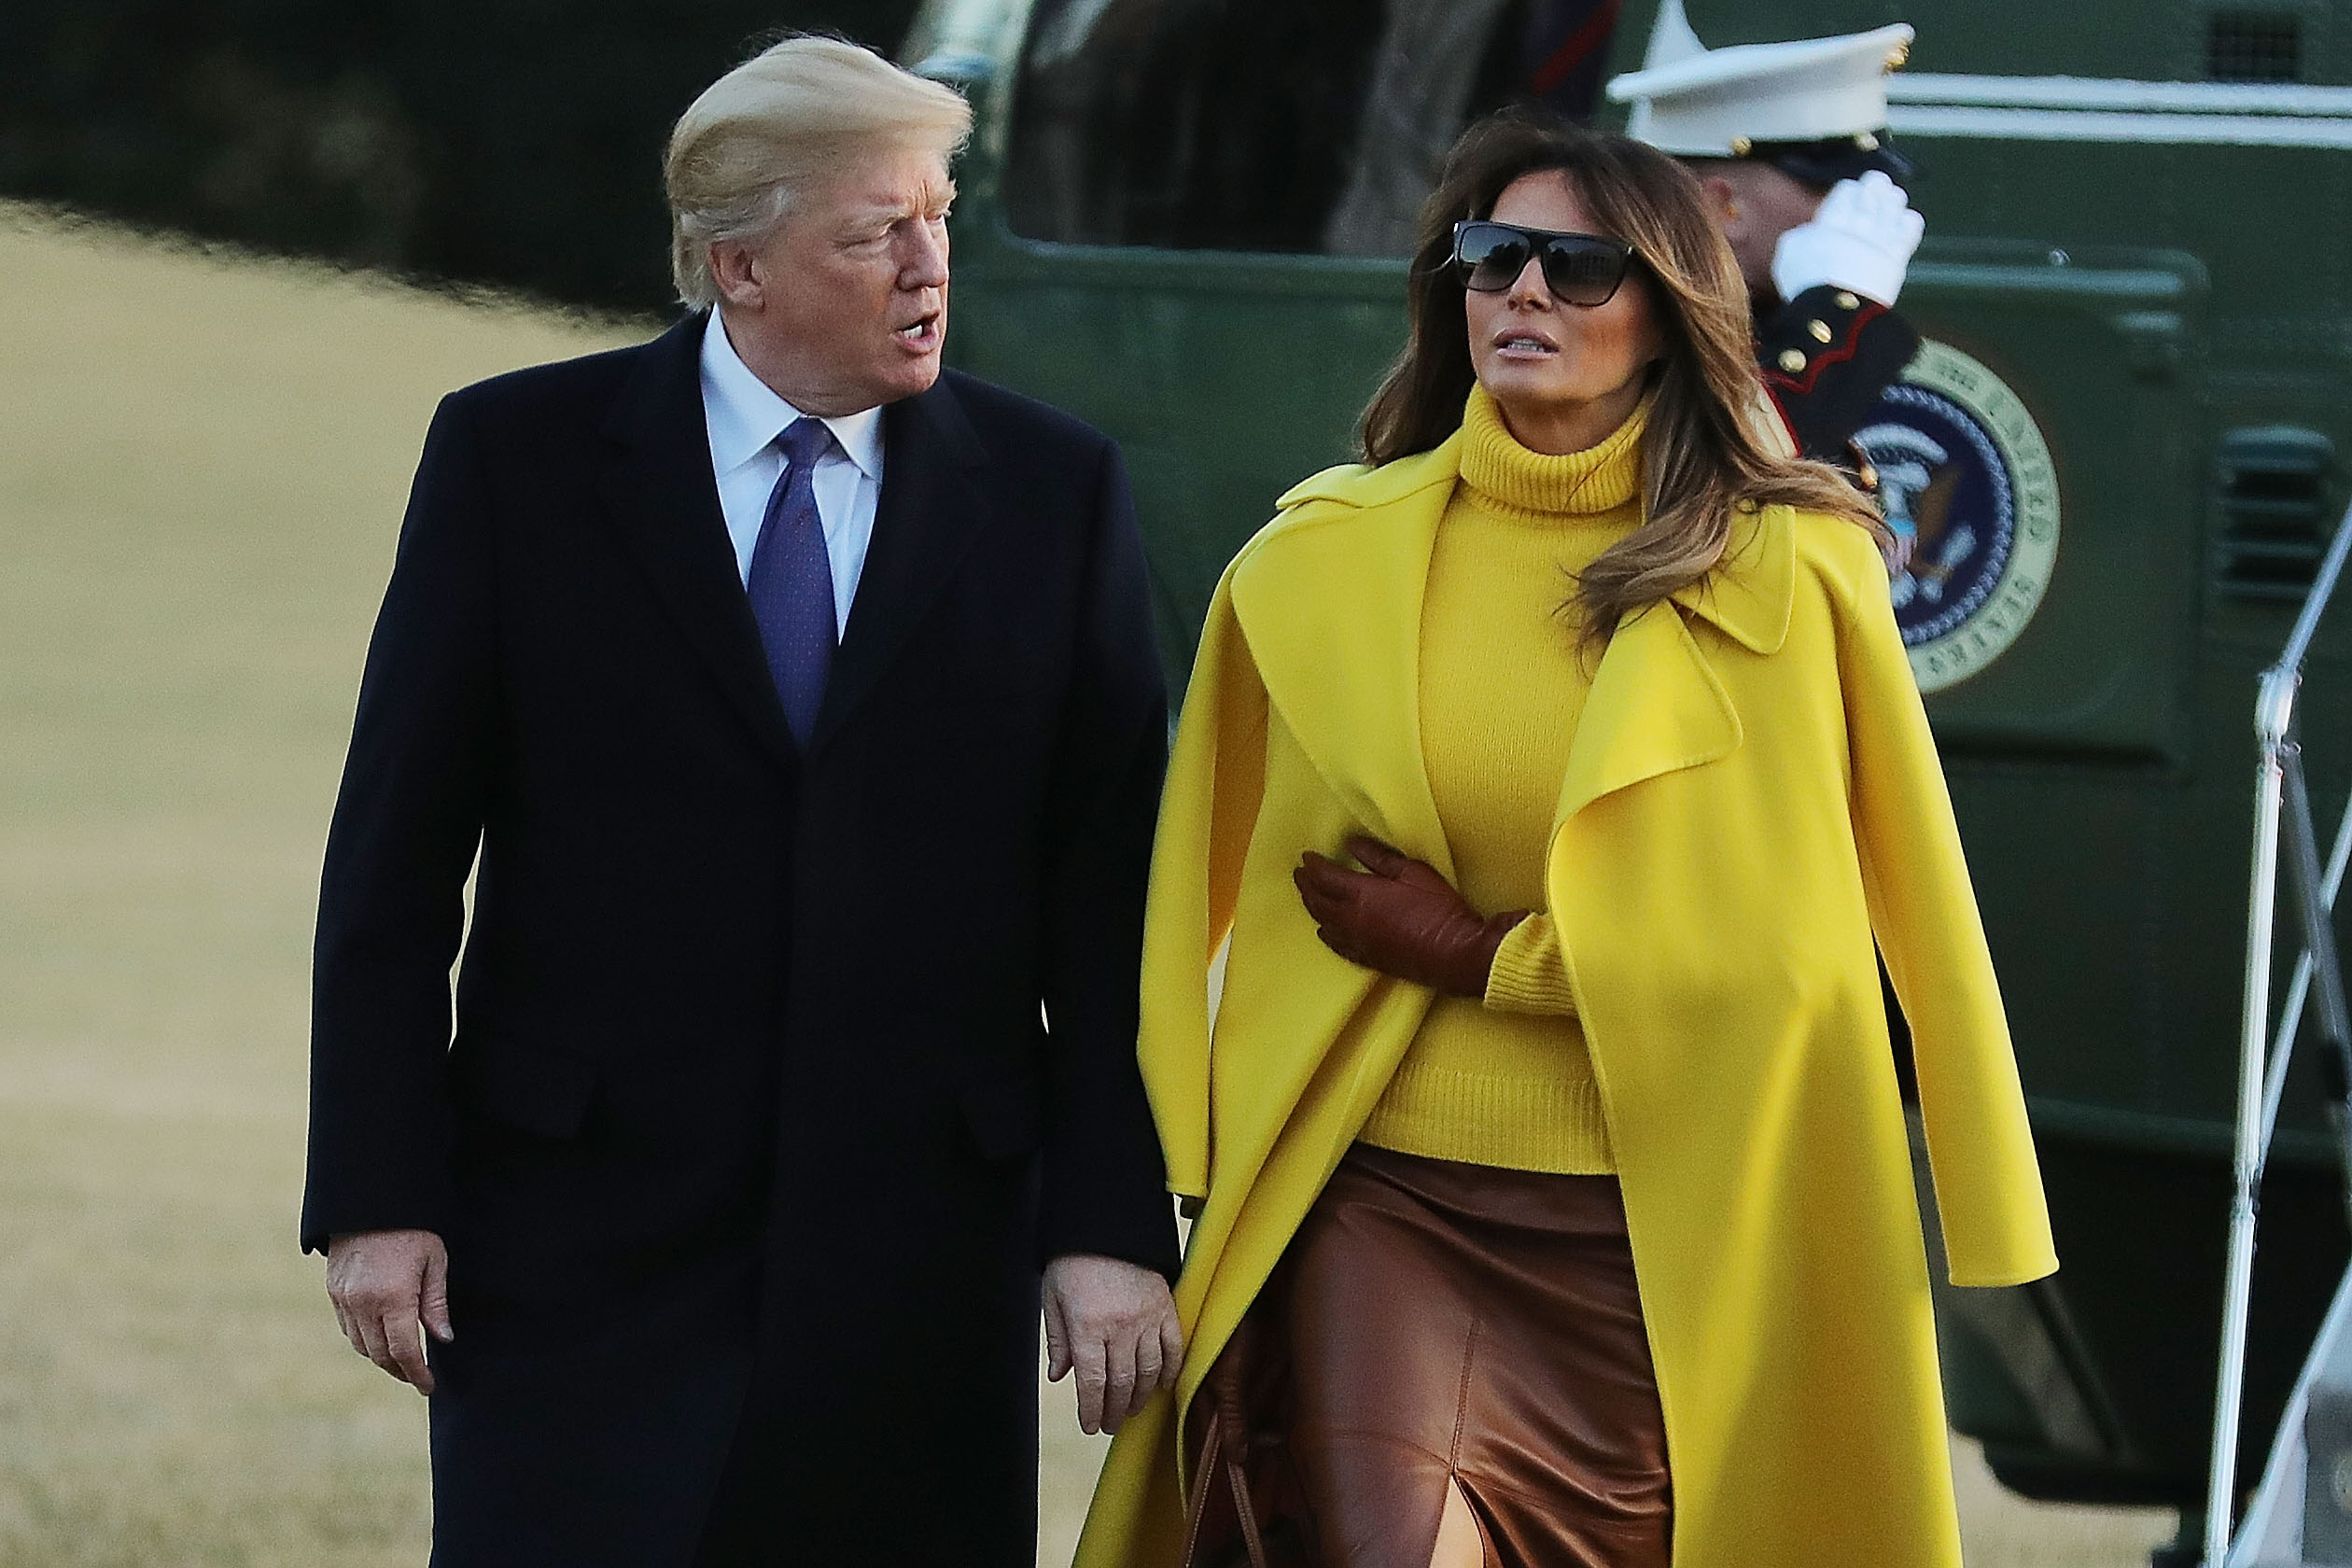 U.S. President Donald Trump (L) and first lady Melania Trump return to the White House after a day trip to Cincinnati, Ohio, February 5, 2018 in Washington, DC. While in Ohio President Trump delivered remarks after touring cylinder manufacturer Sheffer Corporation while the first lady visited patients and their families at Cincinnati Children's Hospital Medical Center.